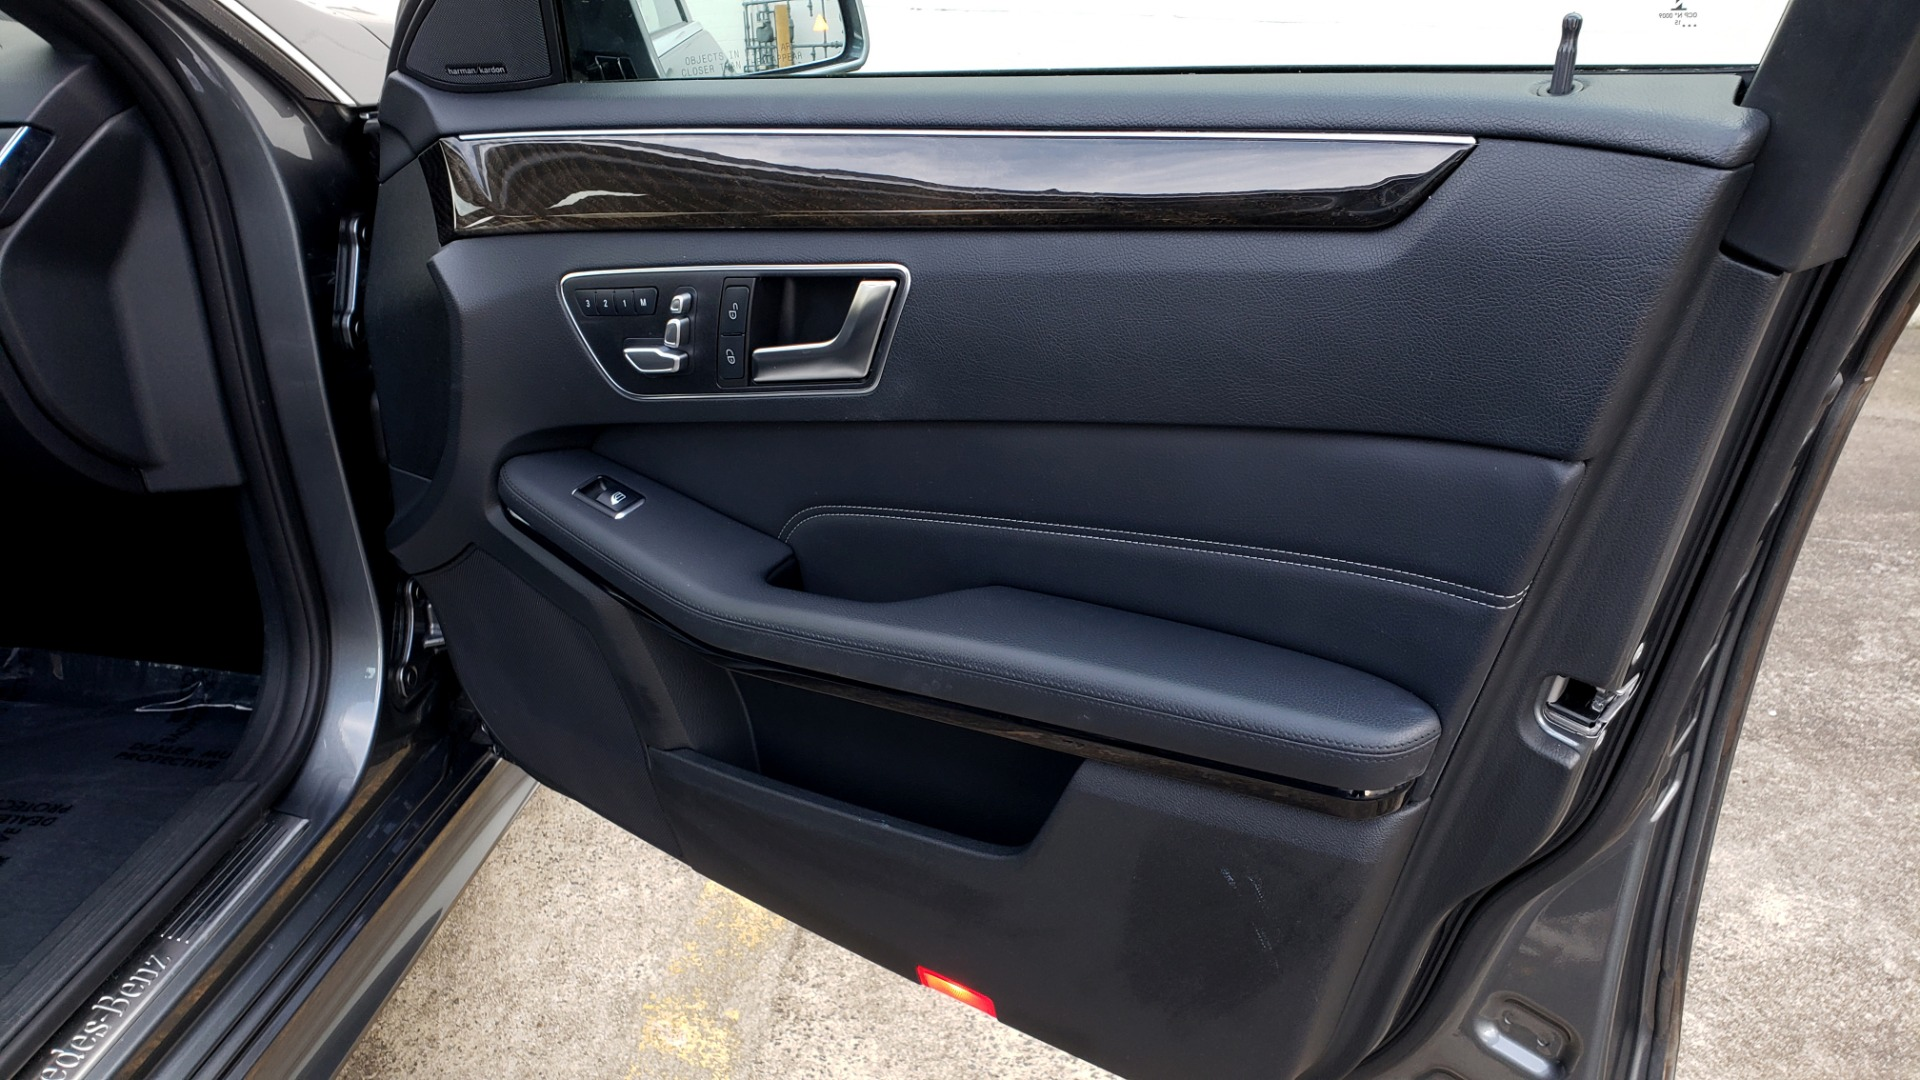 Used 2016 Mercedes-Benz E-CLASS E 350 PREM / KEYLESS-GO / NAV / SUNROOF / REARVIEW for sale Sold at Formula Imports in Charlotte NC 28227 62